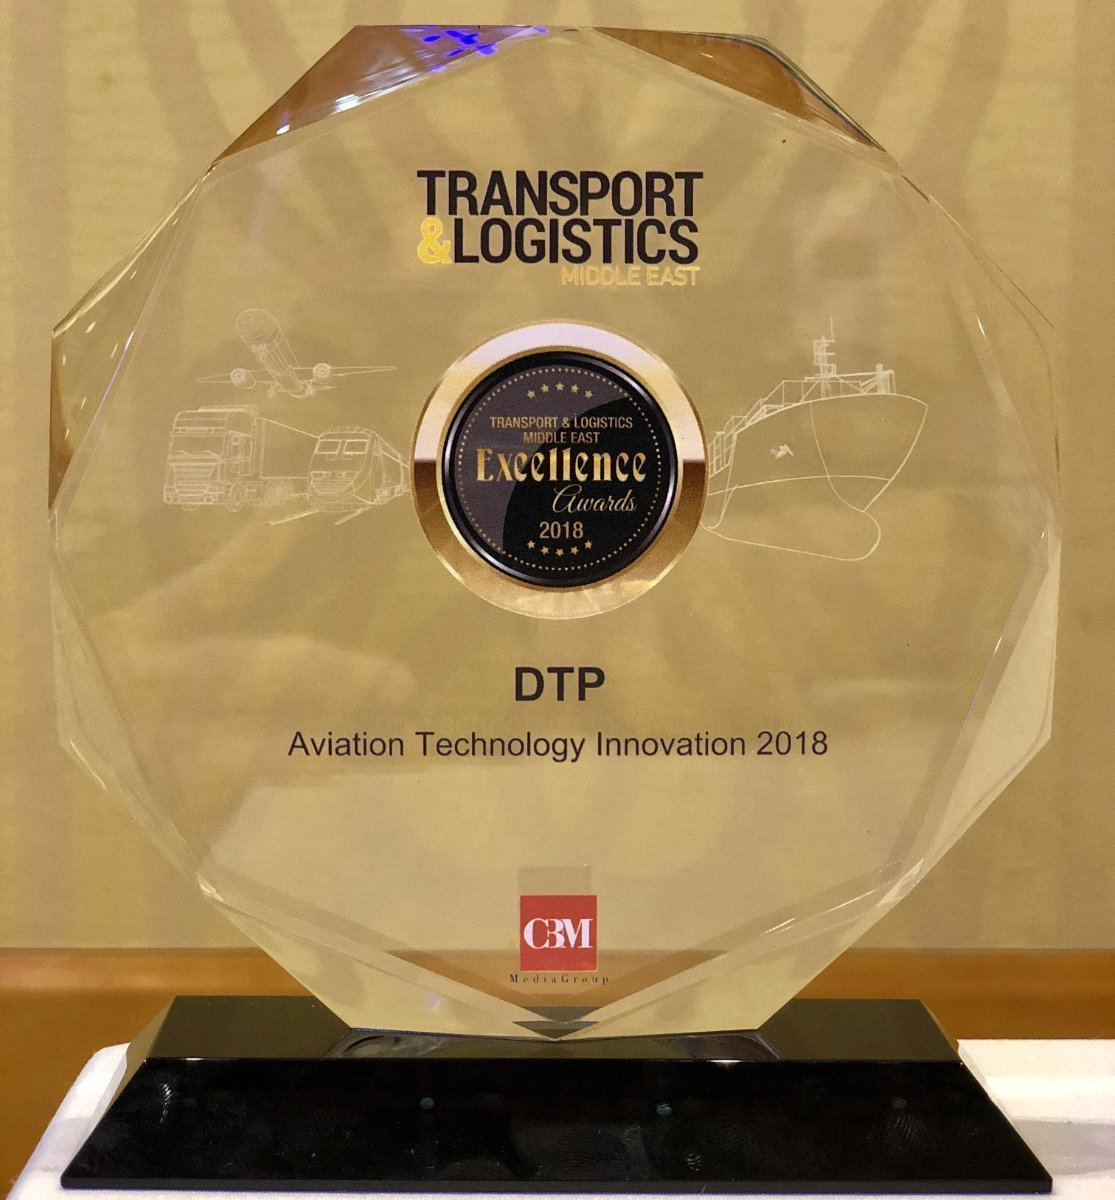 DTP receives Transport & Logistics ME's Excellence Award 2018